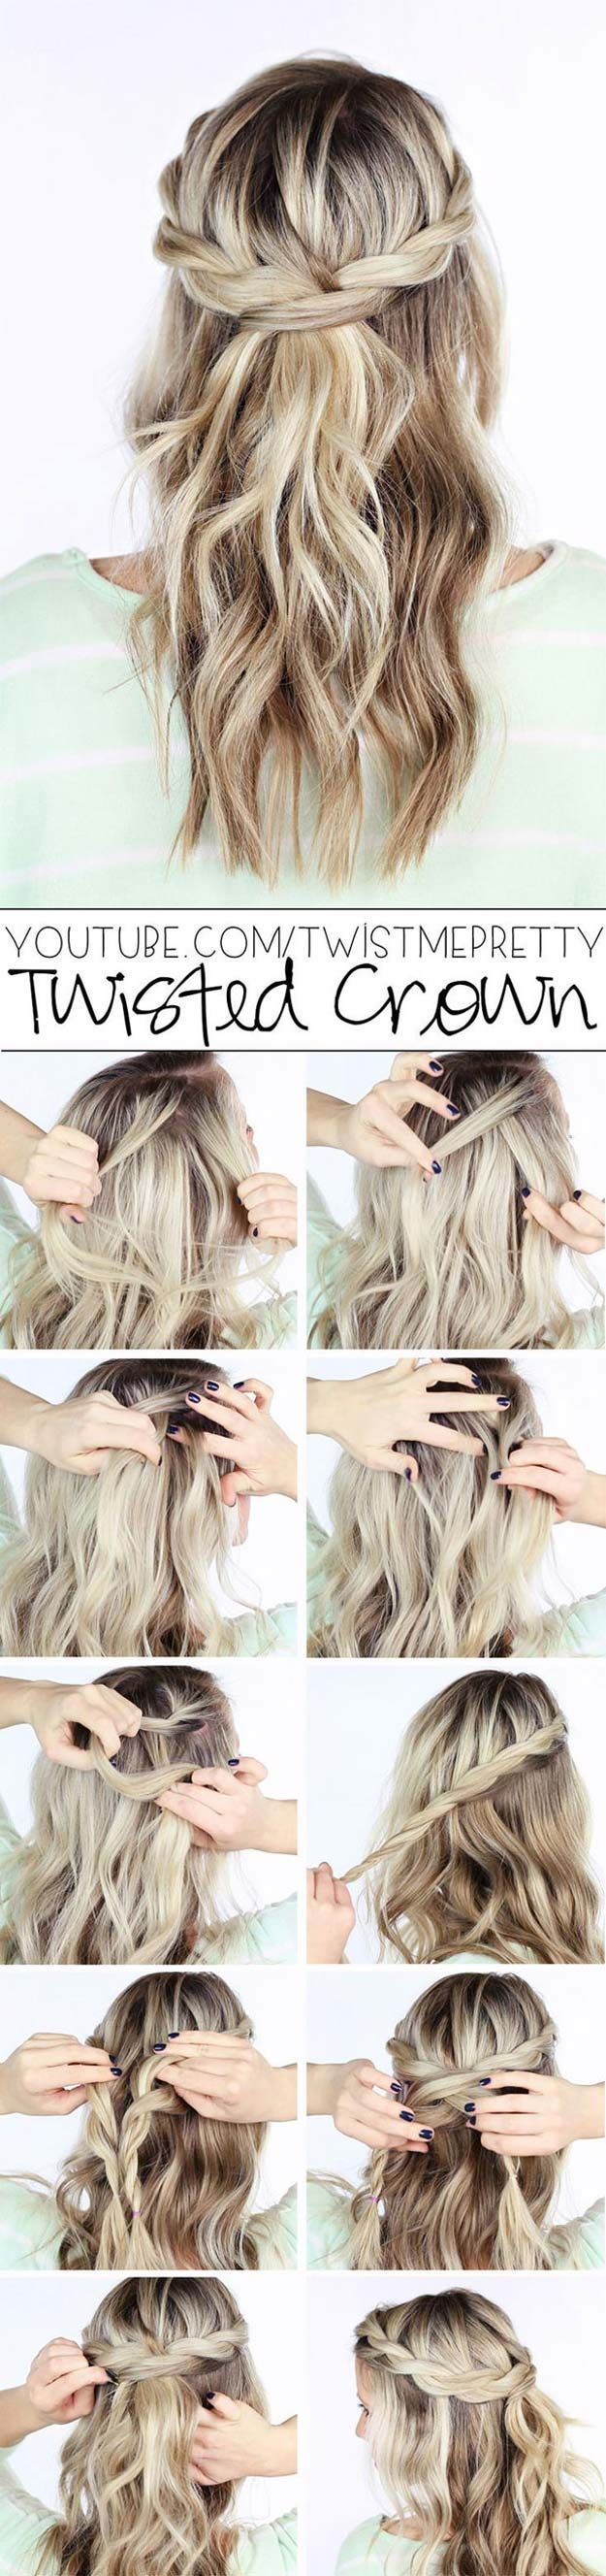 Outstanding 1000 Ideas About Easy Homecoming Hairstyles On Pinterest Short Hairstyles Gunalazisus